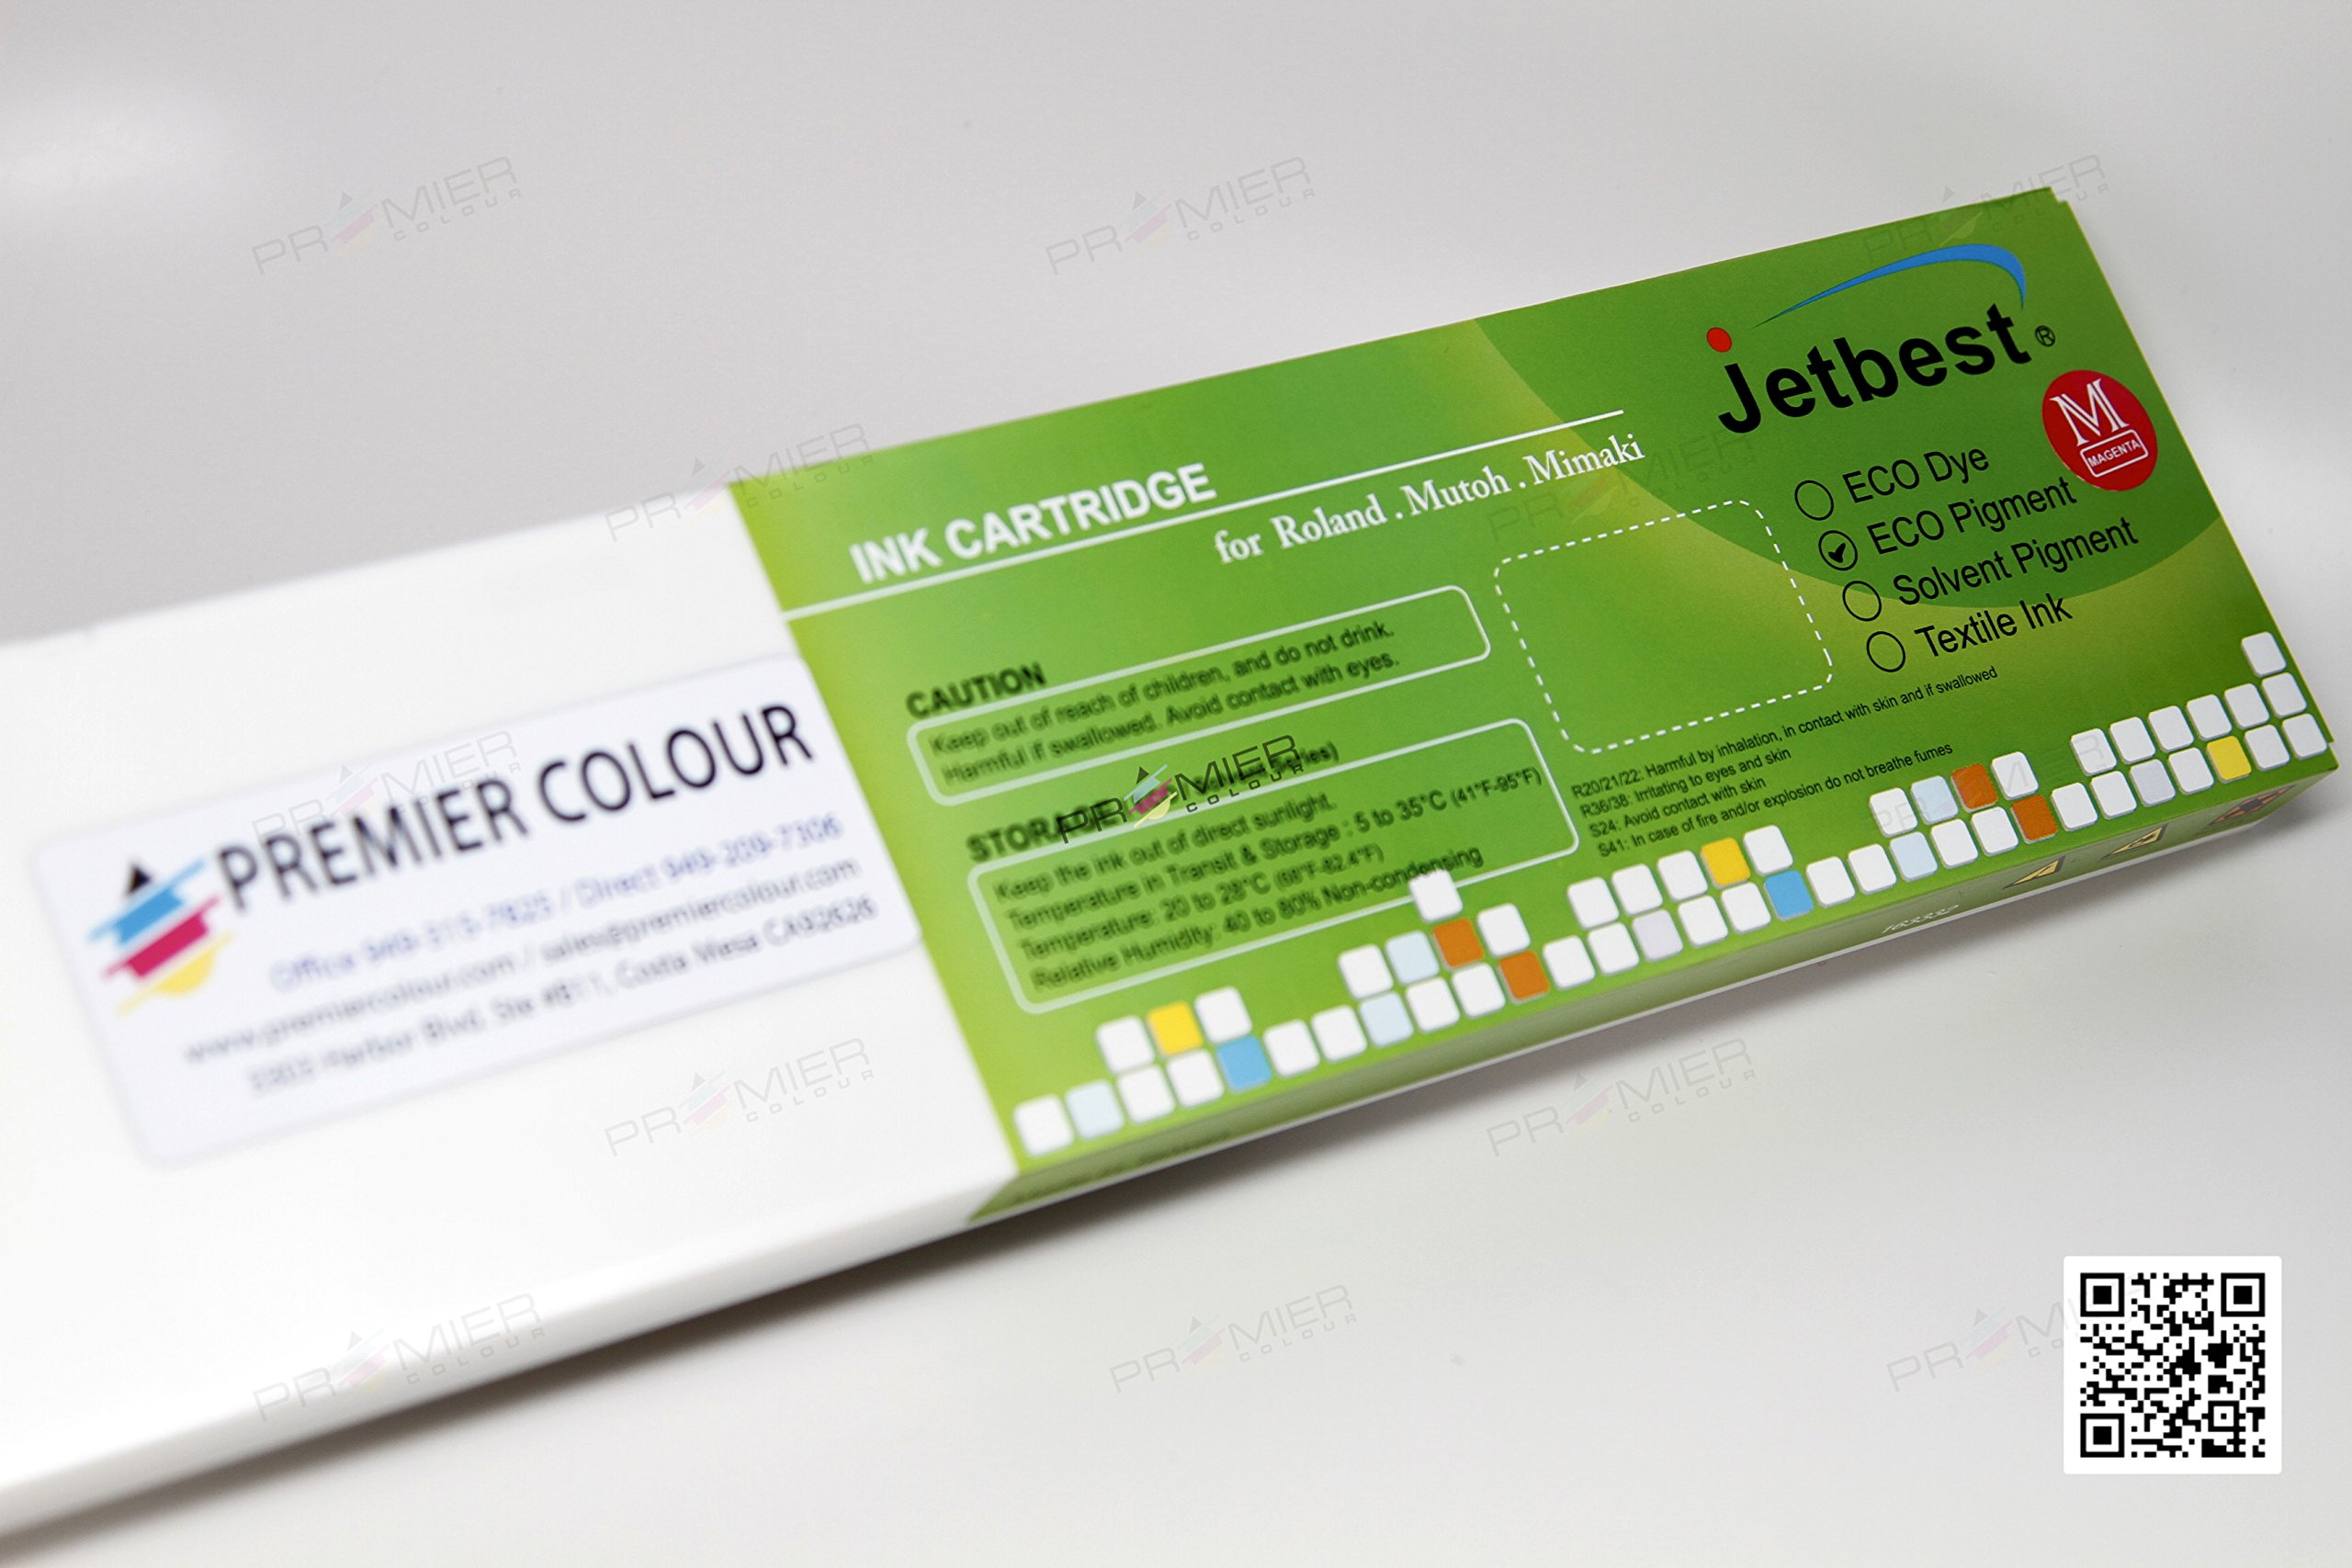 JETBEST MAX, 440mL Eco Solvent Ink Cartridge, for Roland ECO SOL MAX (6 Color) (Magenta)